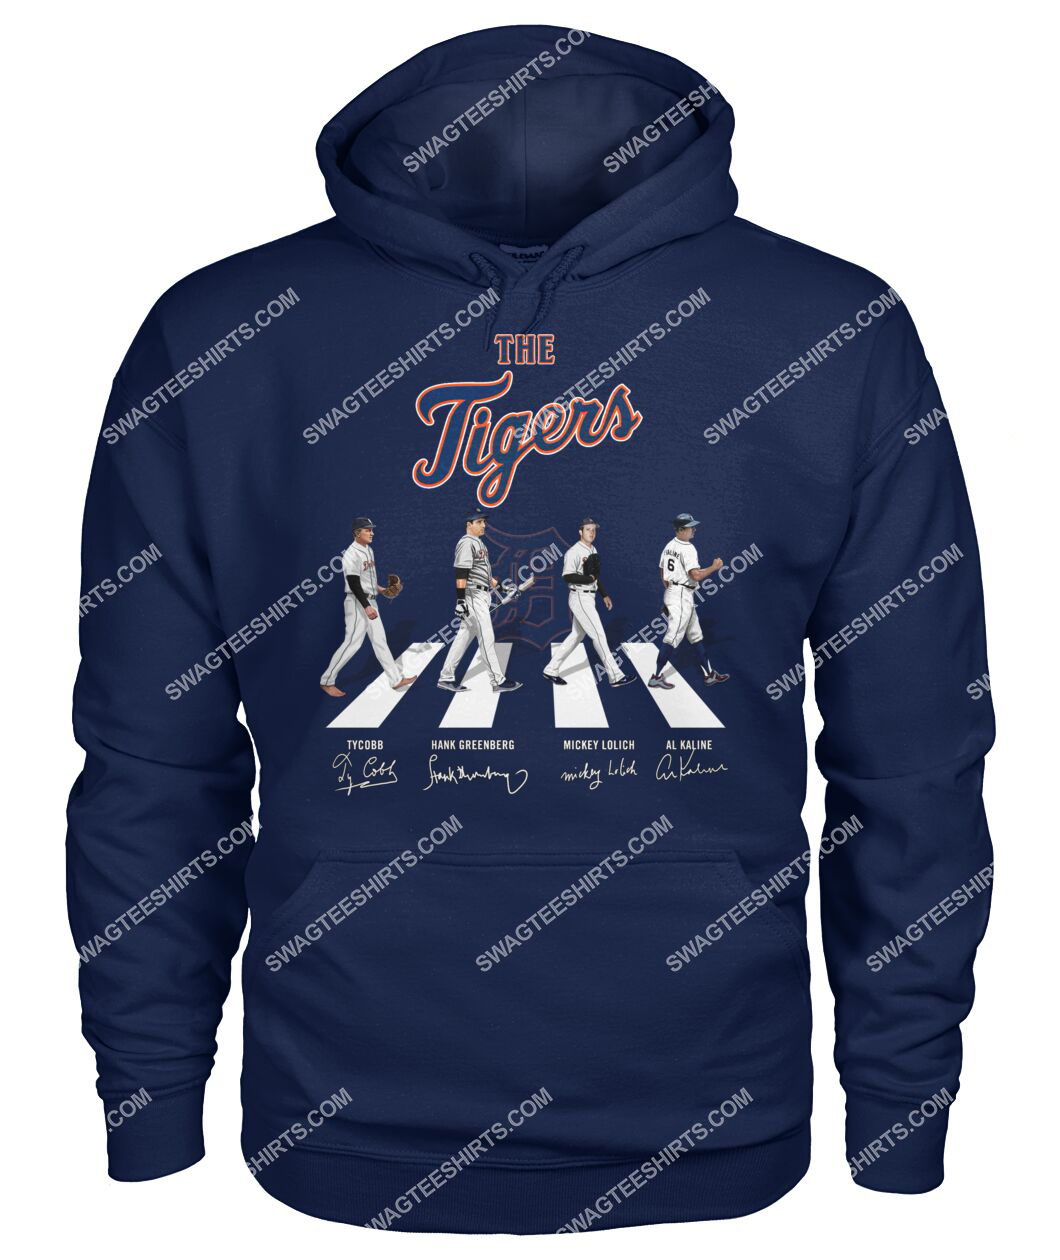 abbey road the detroit tigers signatures hoodie 1